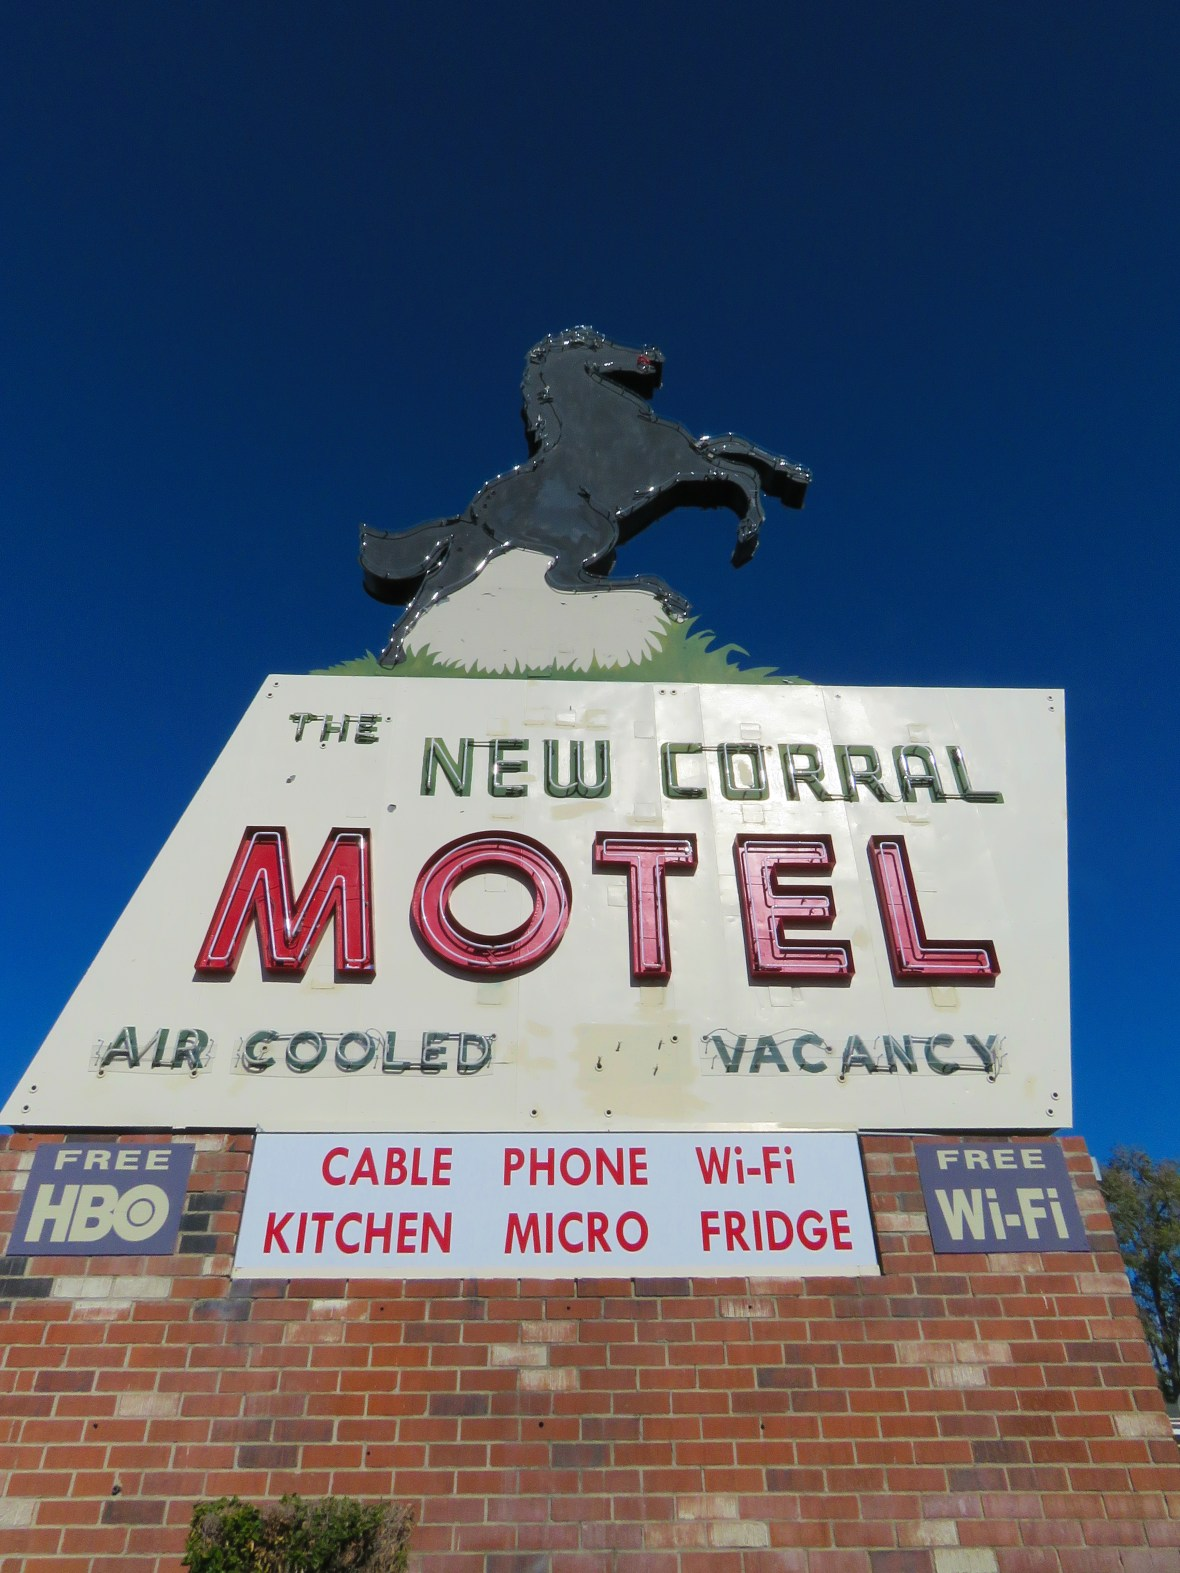 The New Corral Motel - 14643 7th Street, Victorville, California U.S.A. - November 10, 2015